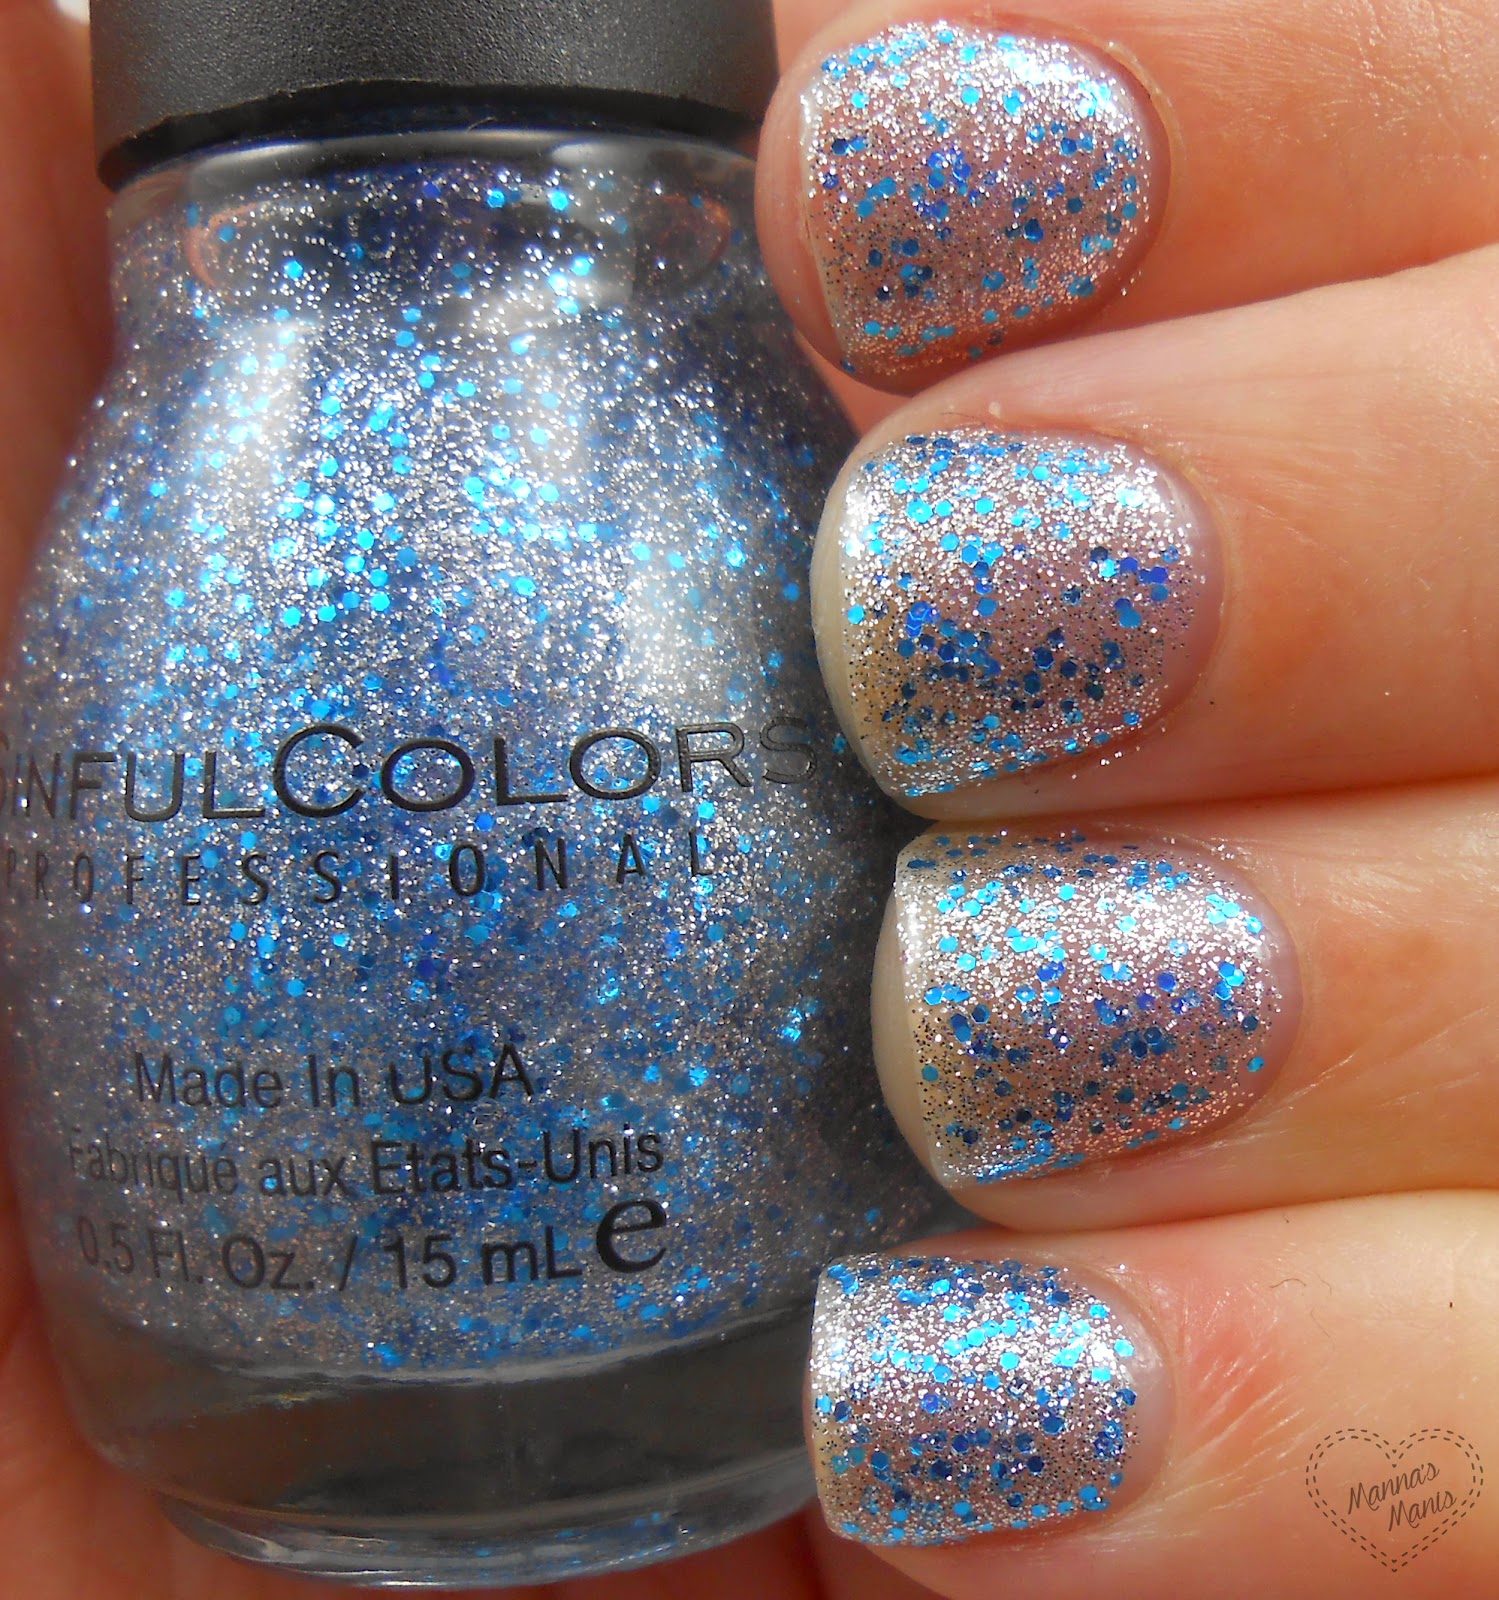 sinful colors ice dream, a silver and blue glitter nail polish